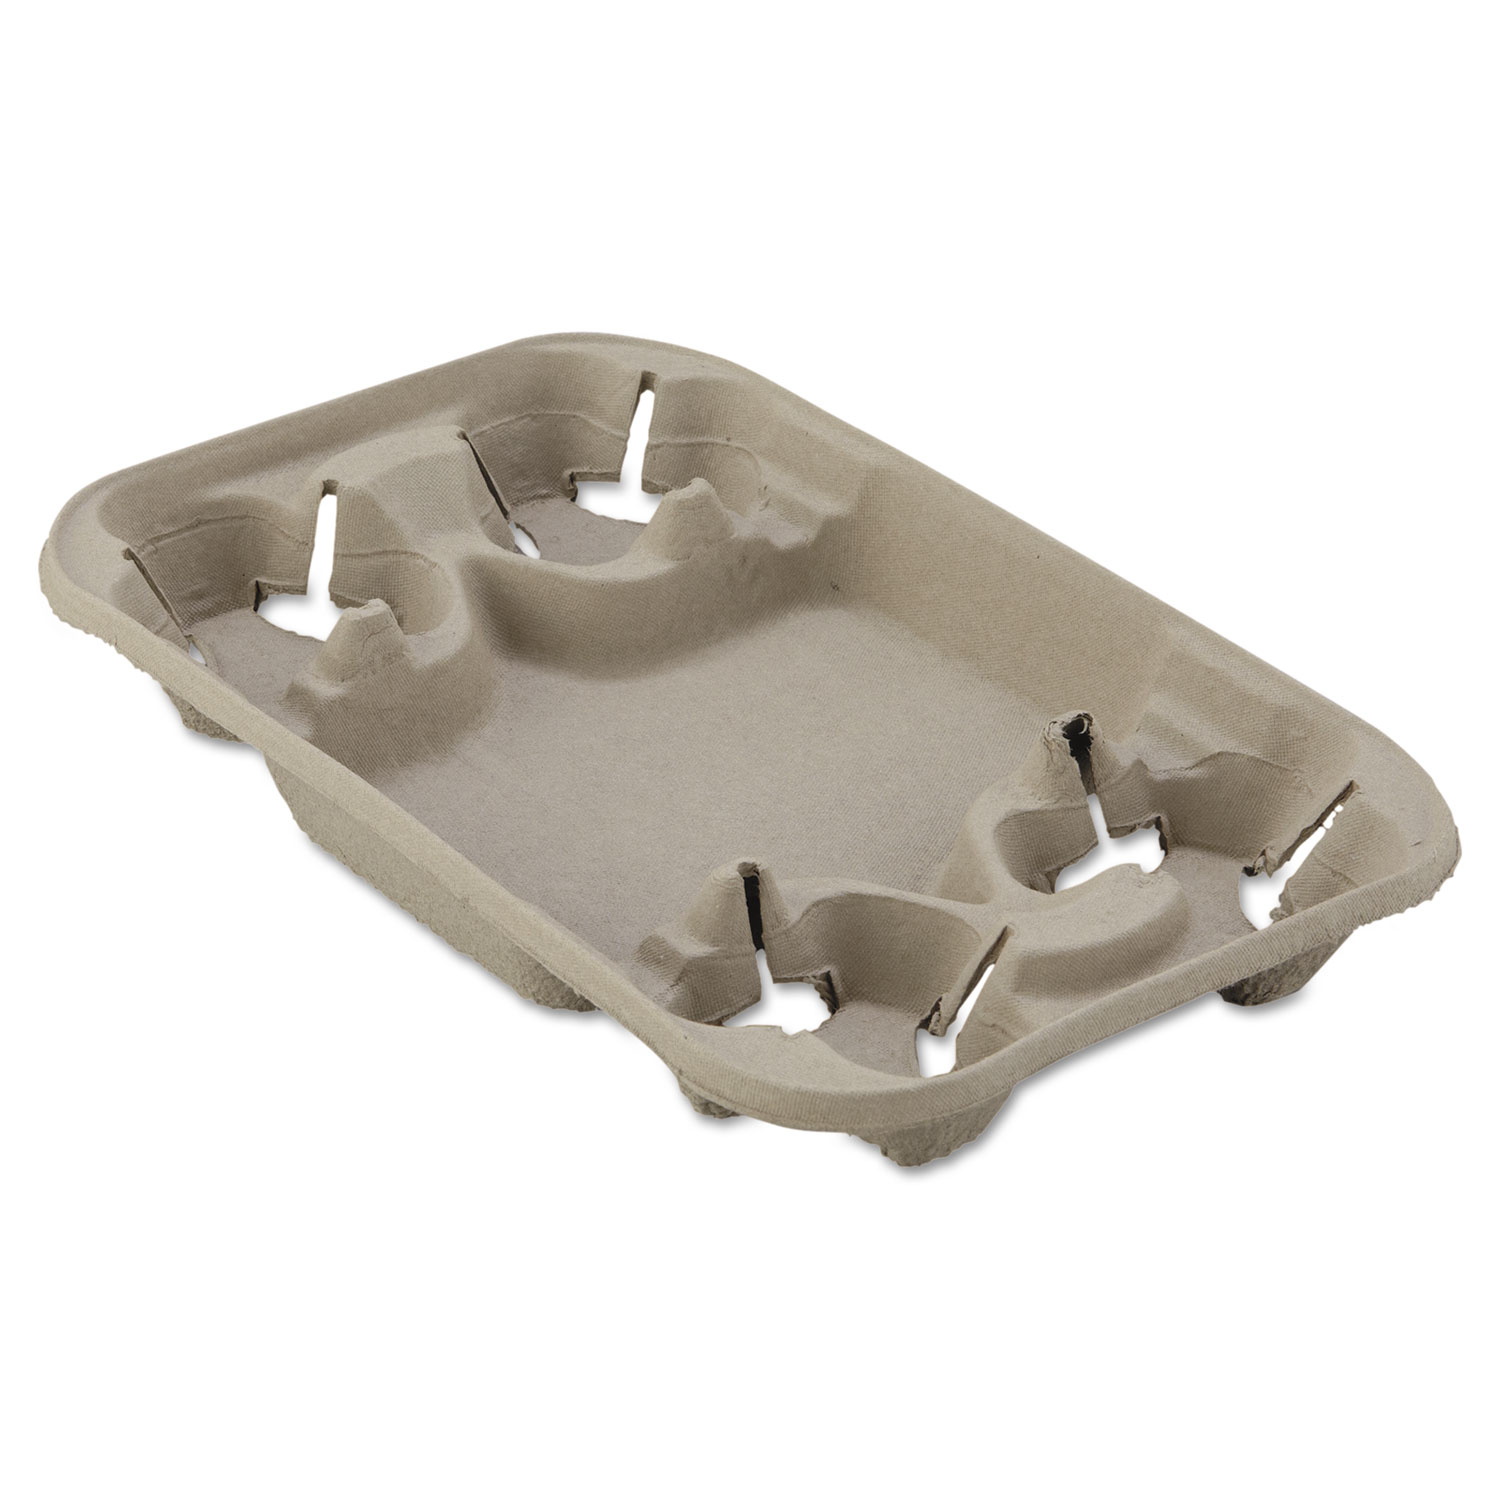 StrongHolder Molded Fiber Cup/Food Tray, 8-22oz, Four Cups, 250/Carton